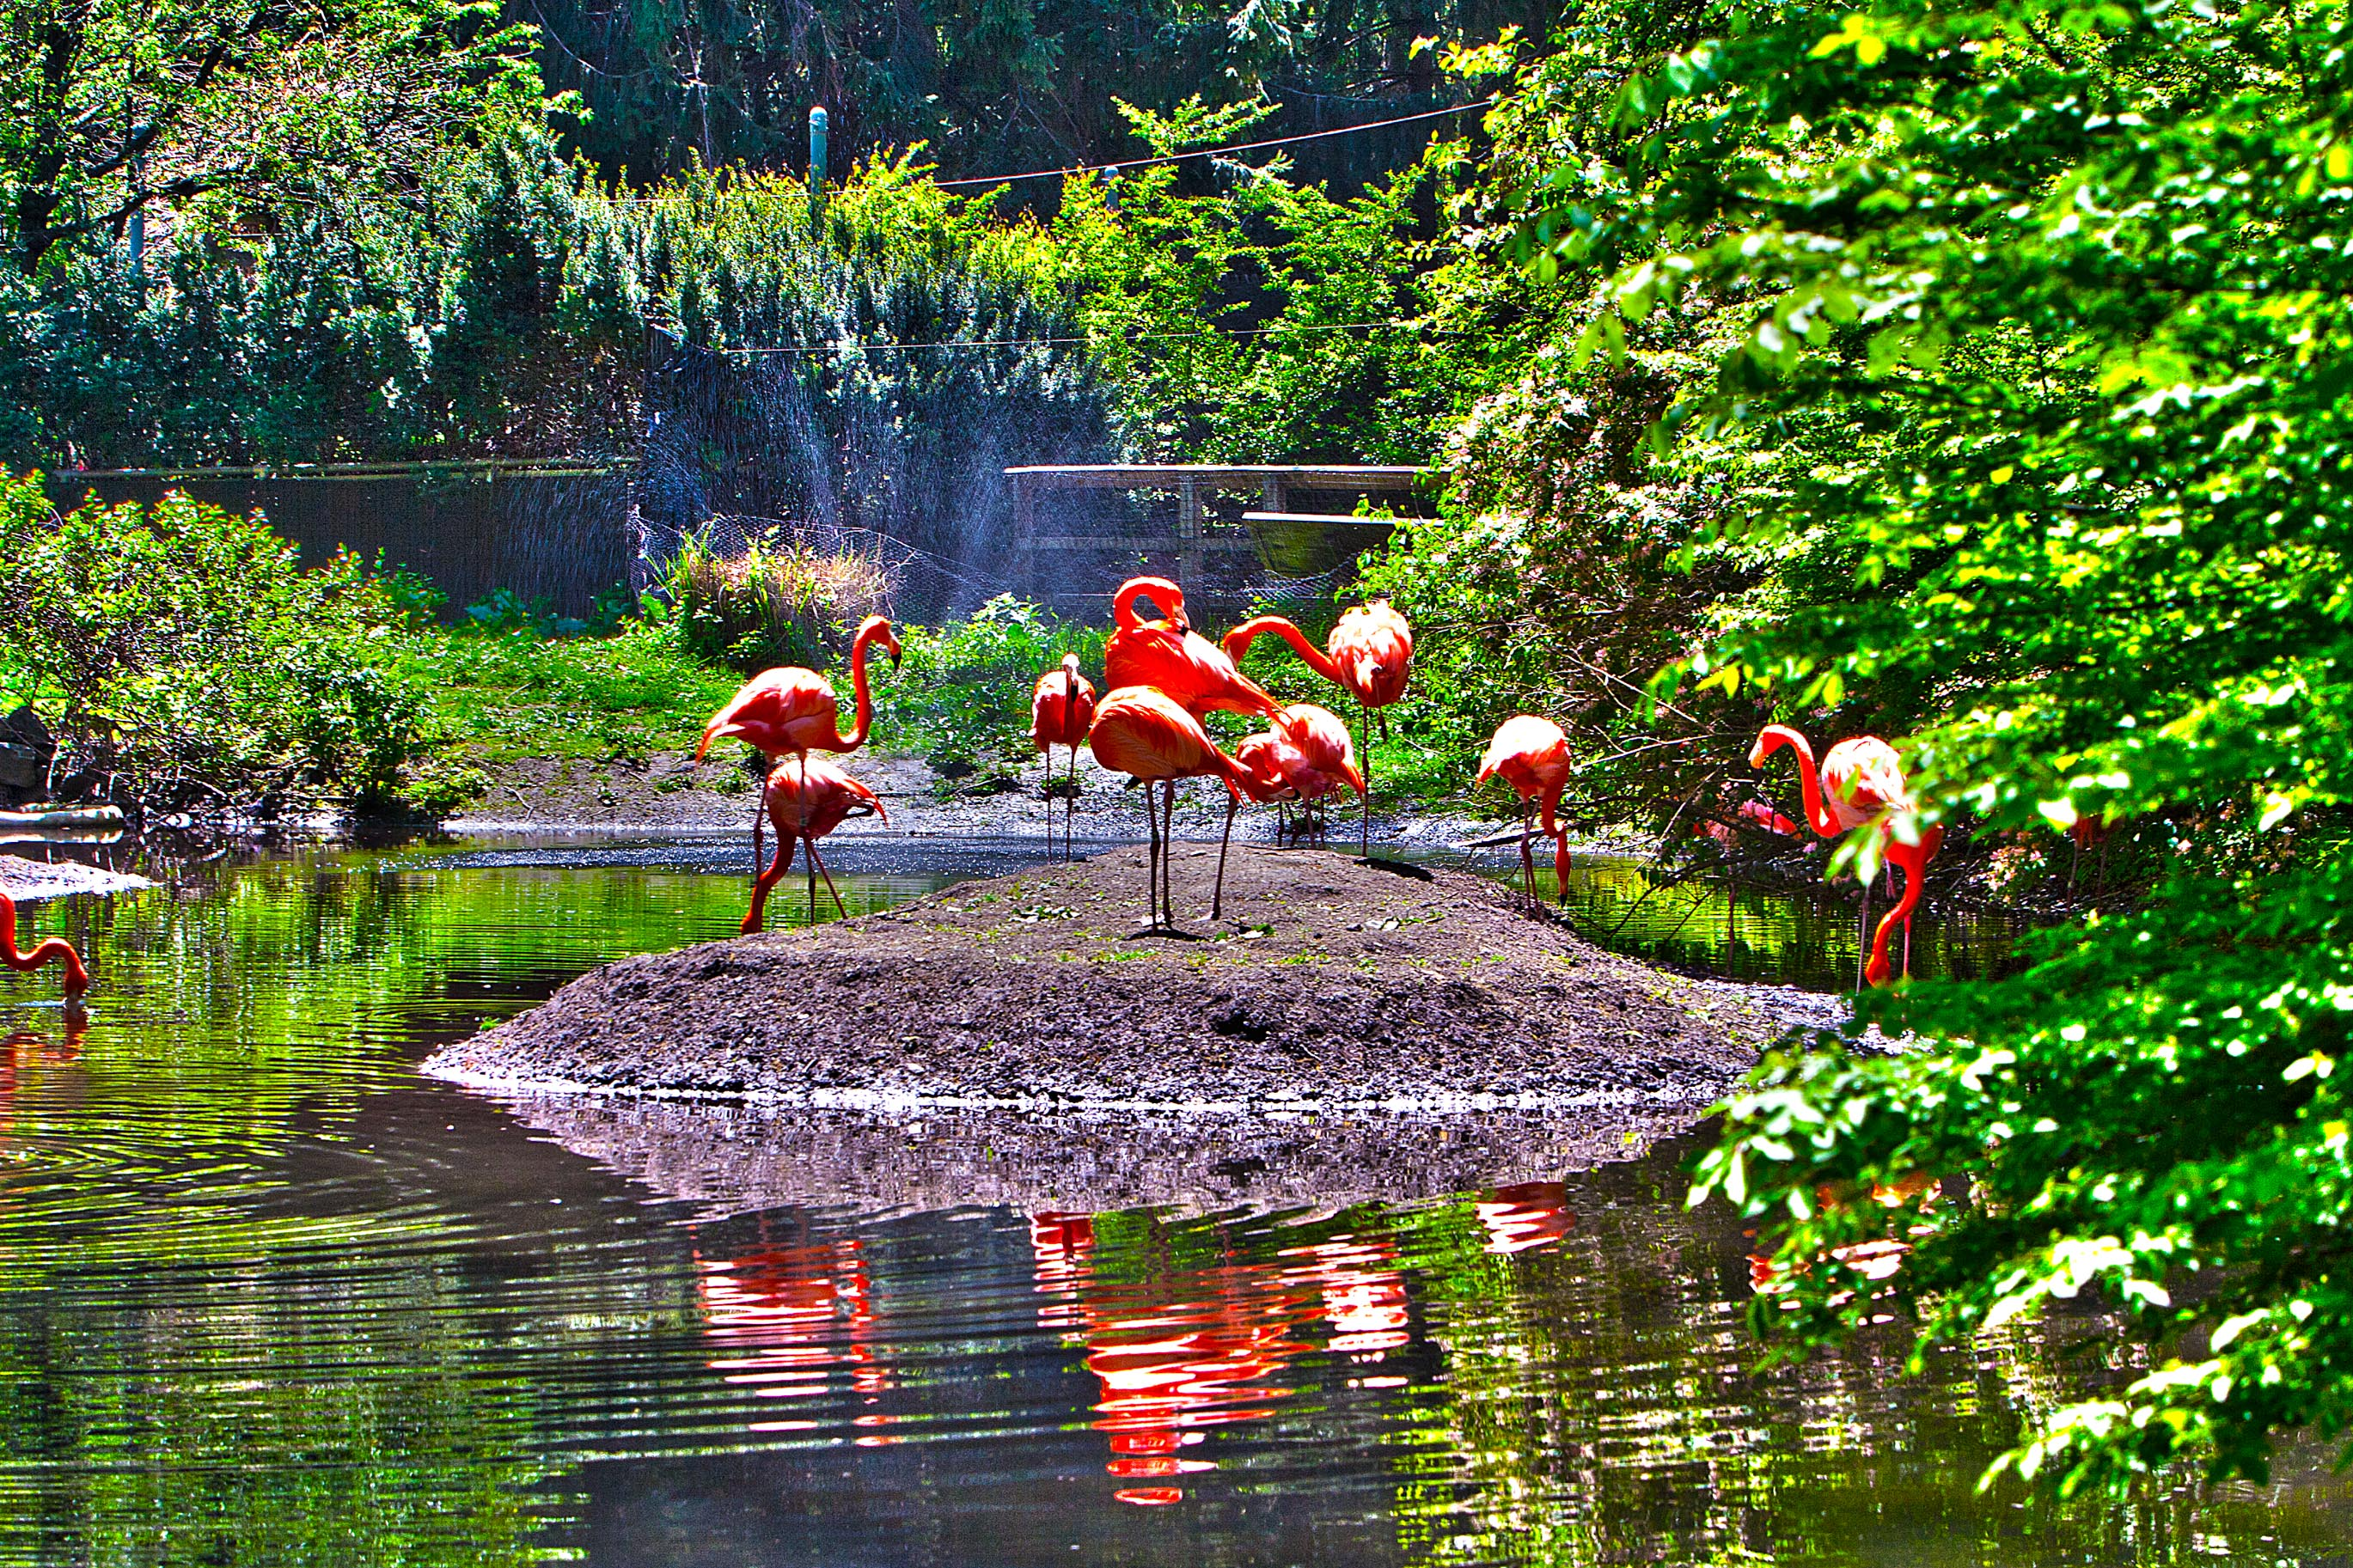 Flamingos at Bronx Zoo – HDR